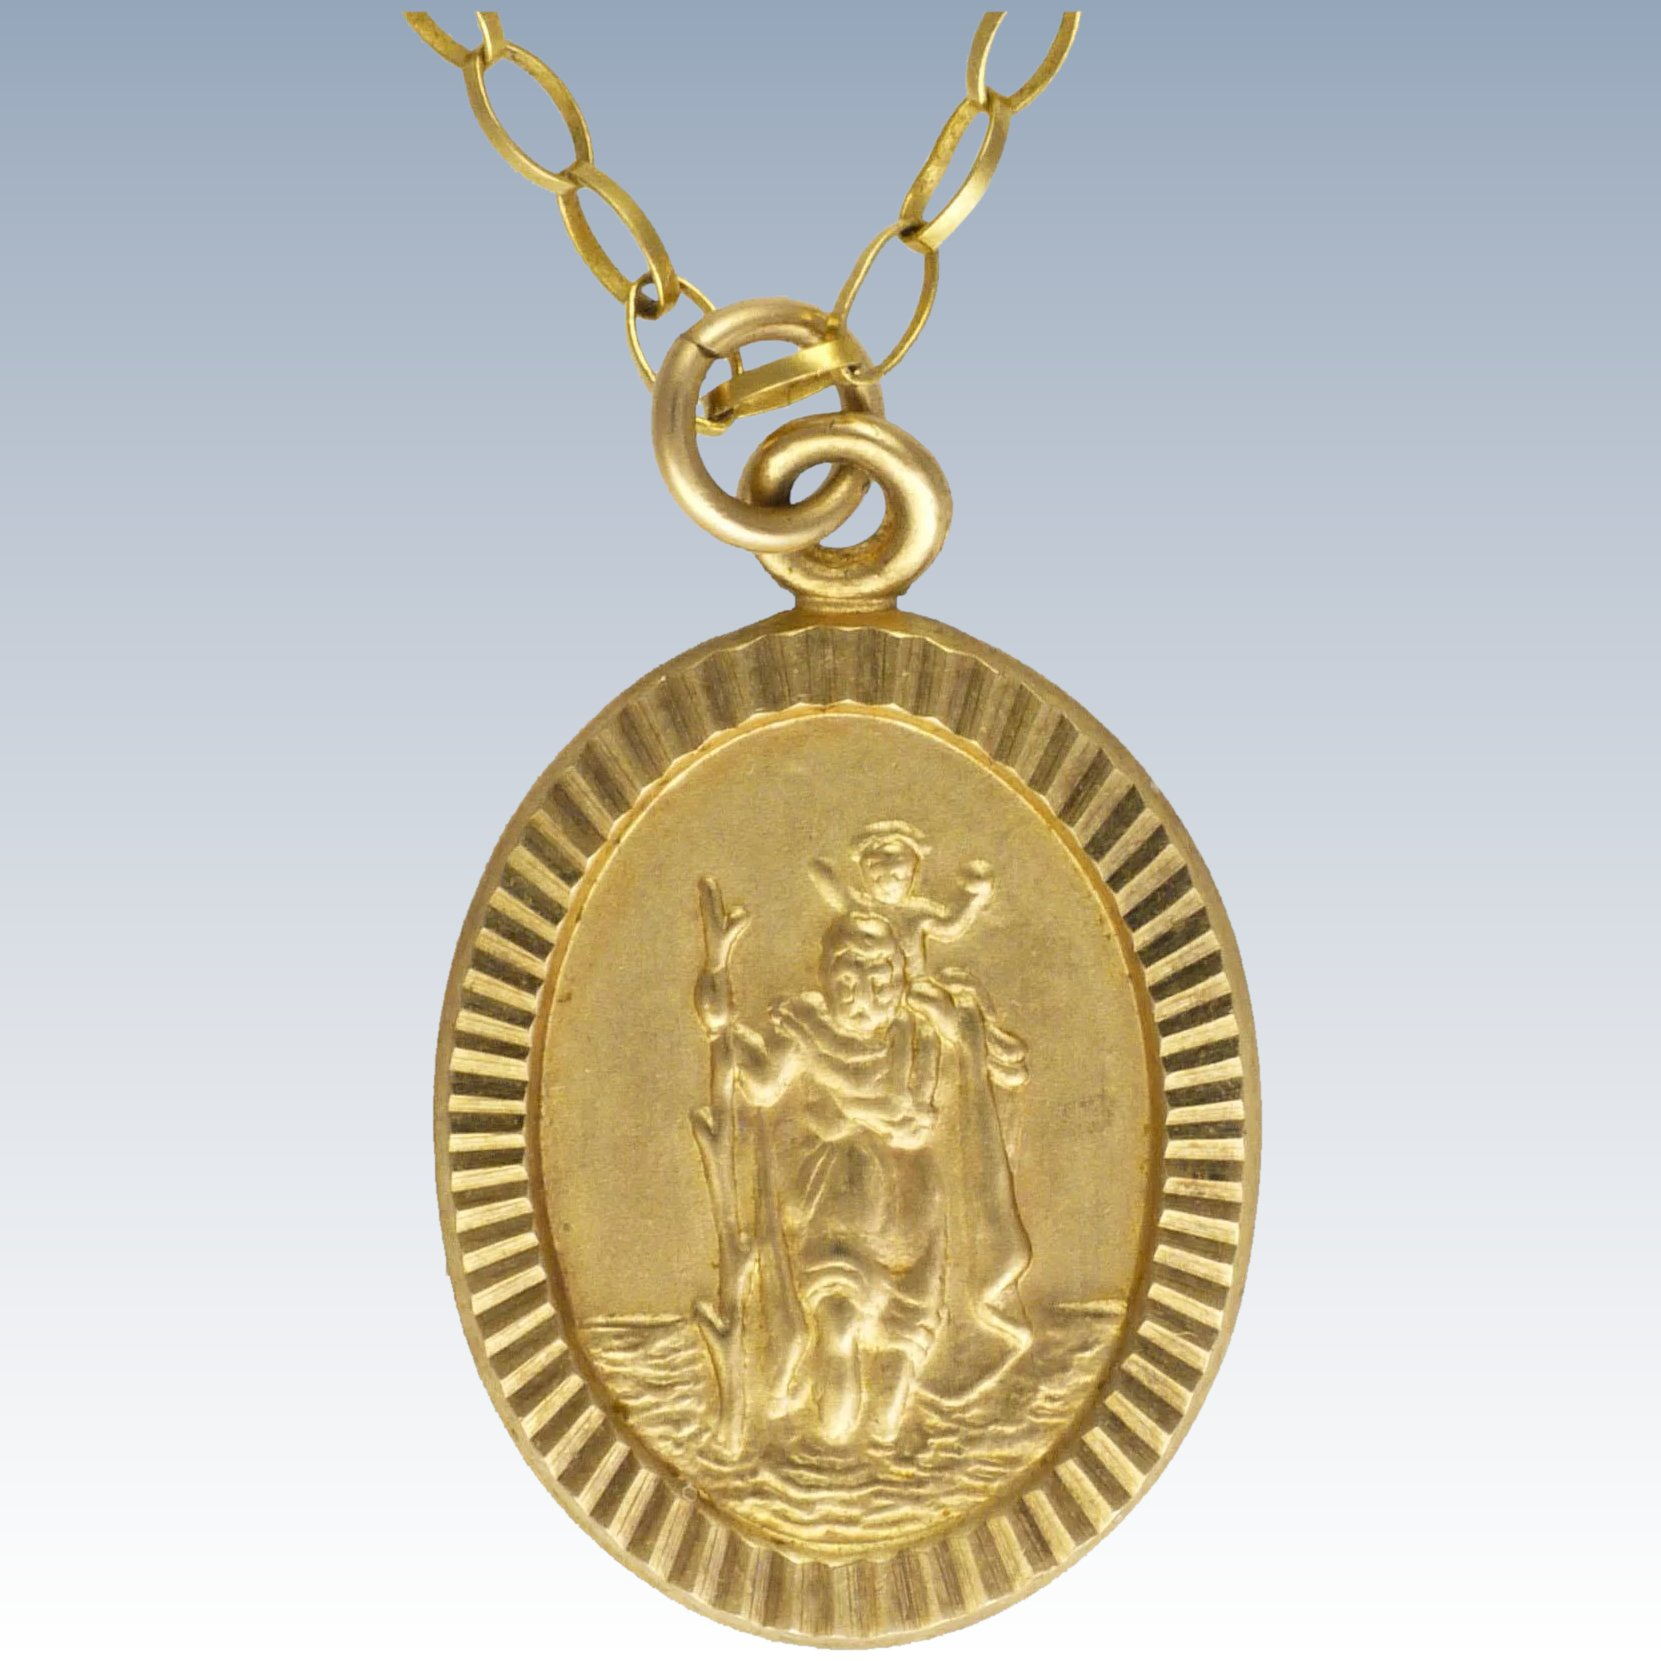 9k gold st christopher pendant necklace suzys treasures on 9k gold st christopher pendant necklace click to expand aloadofball Gallery